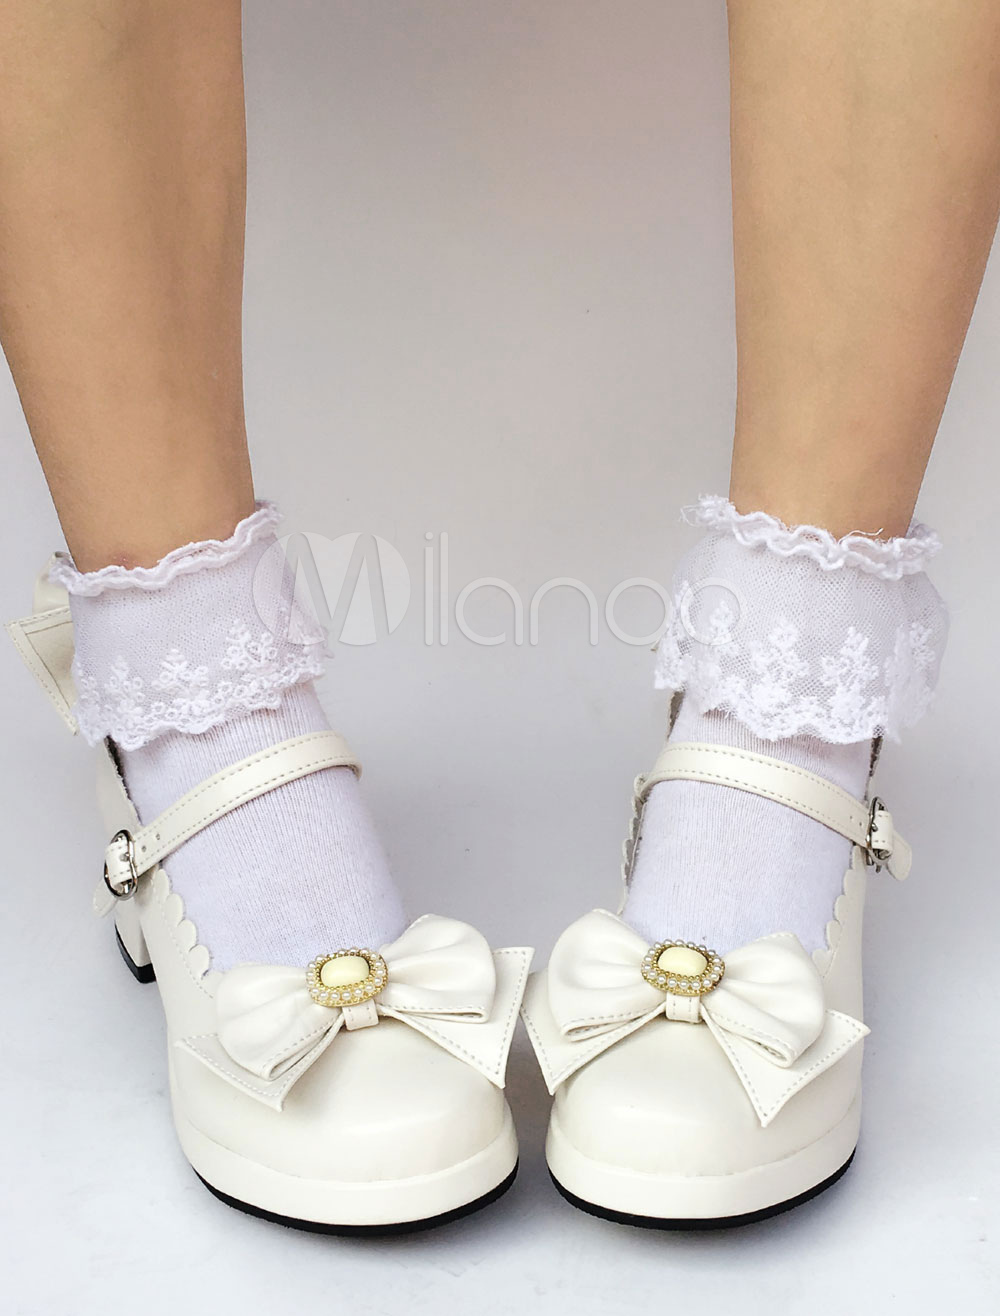 Buy Sweet Lolita Shoes White Bow Round Toe Lolita Pumps for $64.79 in Milanoo store